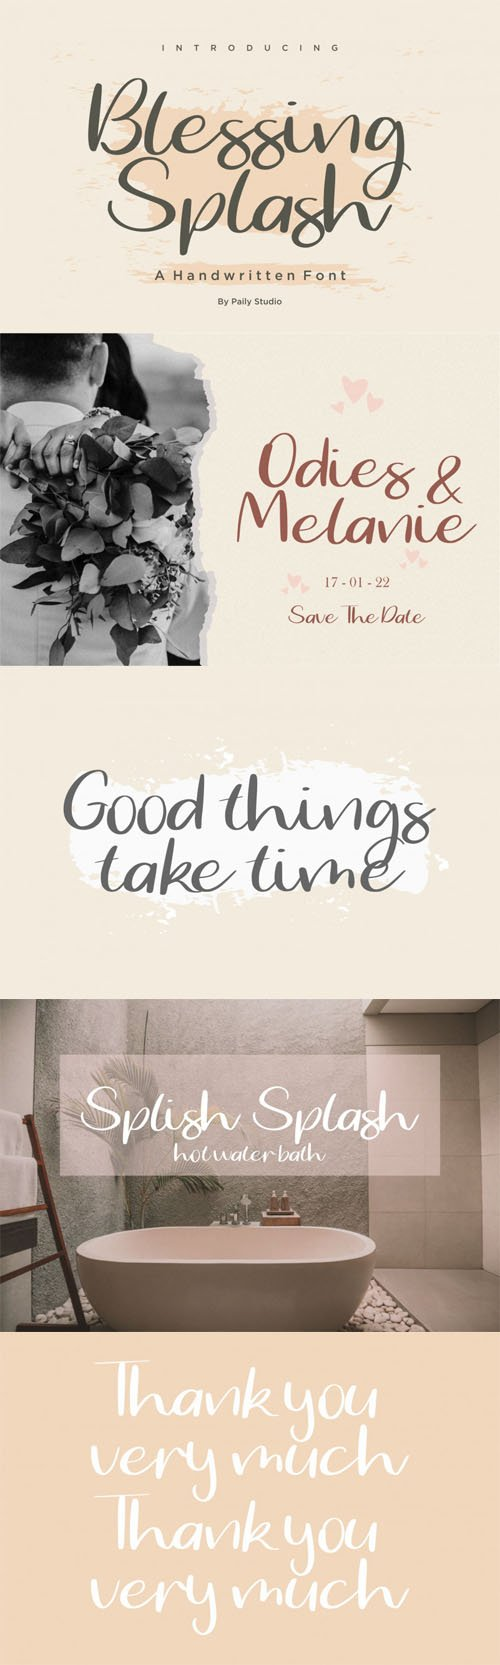 Blessing Splash Handwritten Font